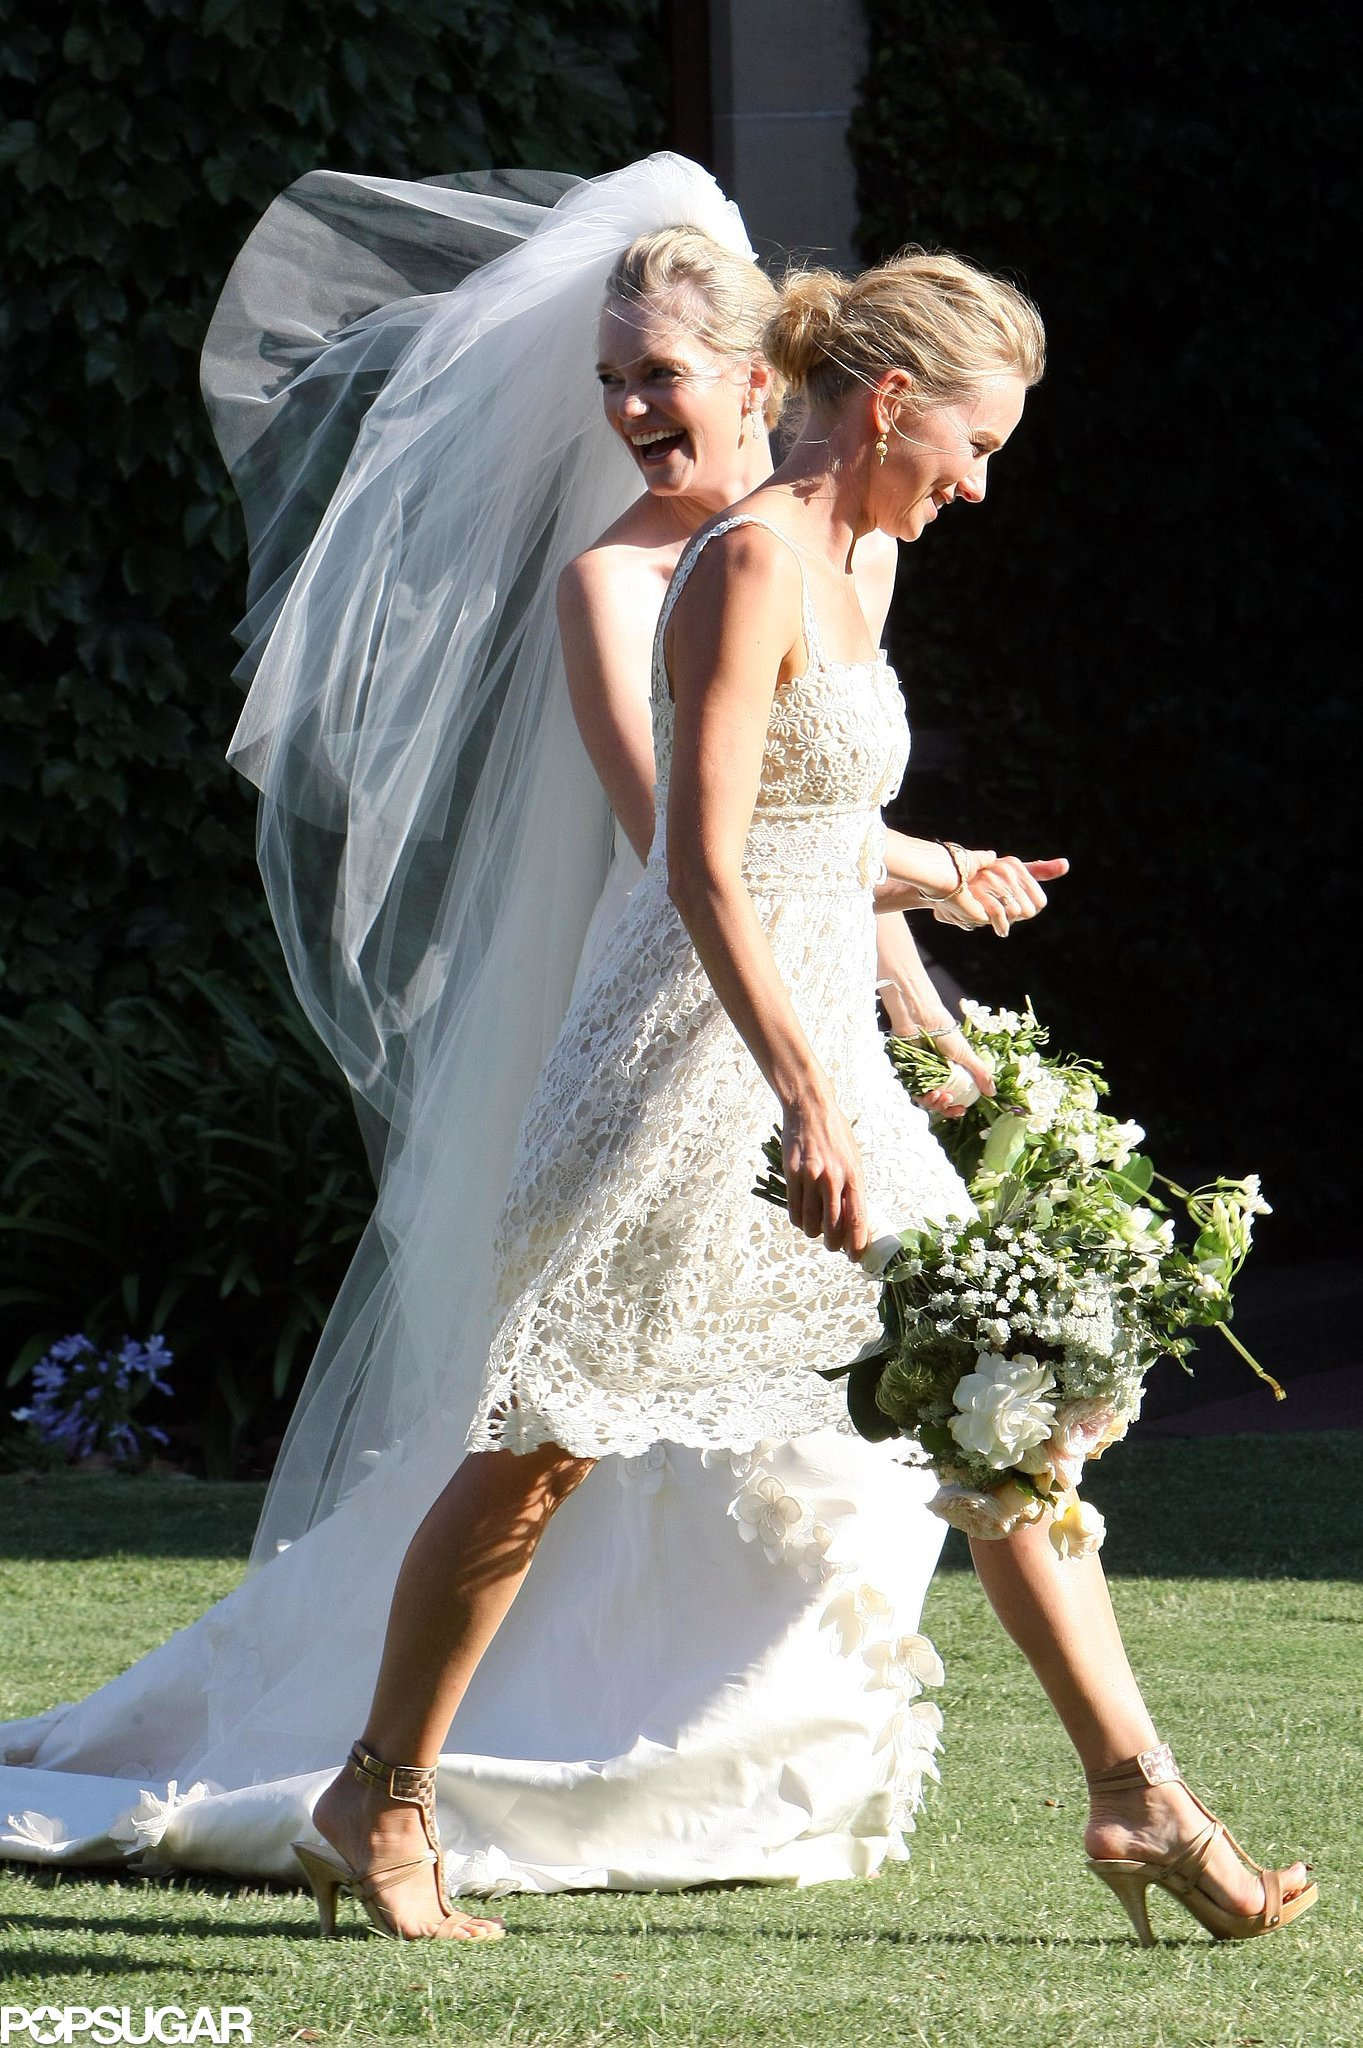 Naomi Watts carried a bouquet alongside the bride, Emma Cooper, at the December 2010 nuptials in Sydney, Australia.